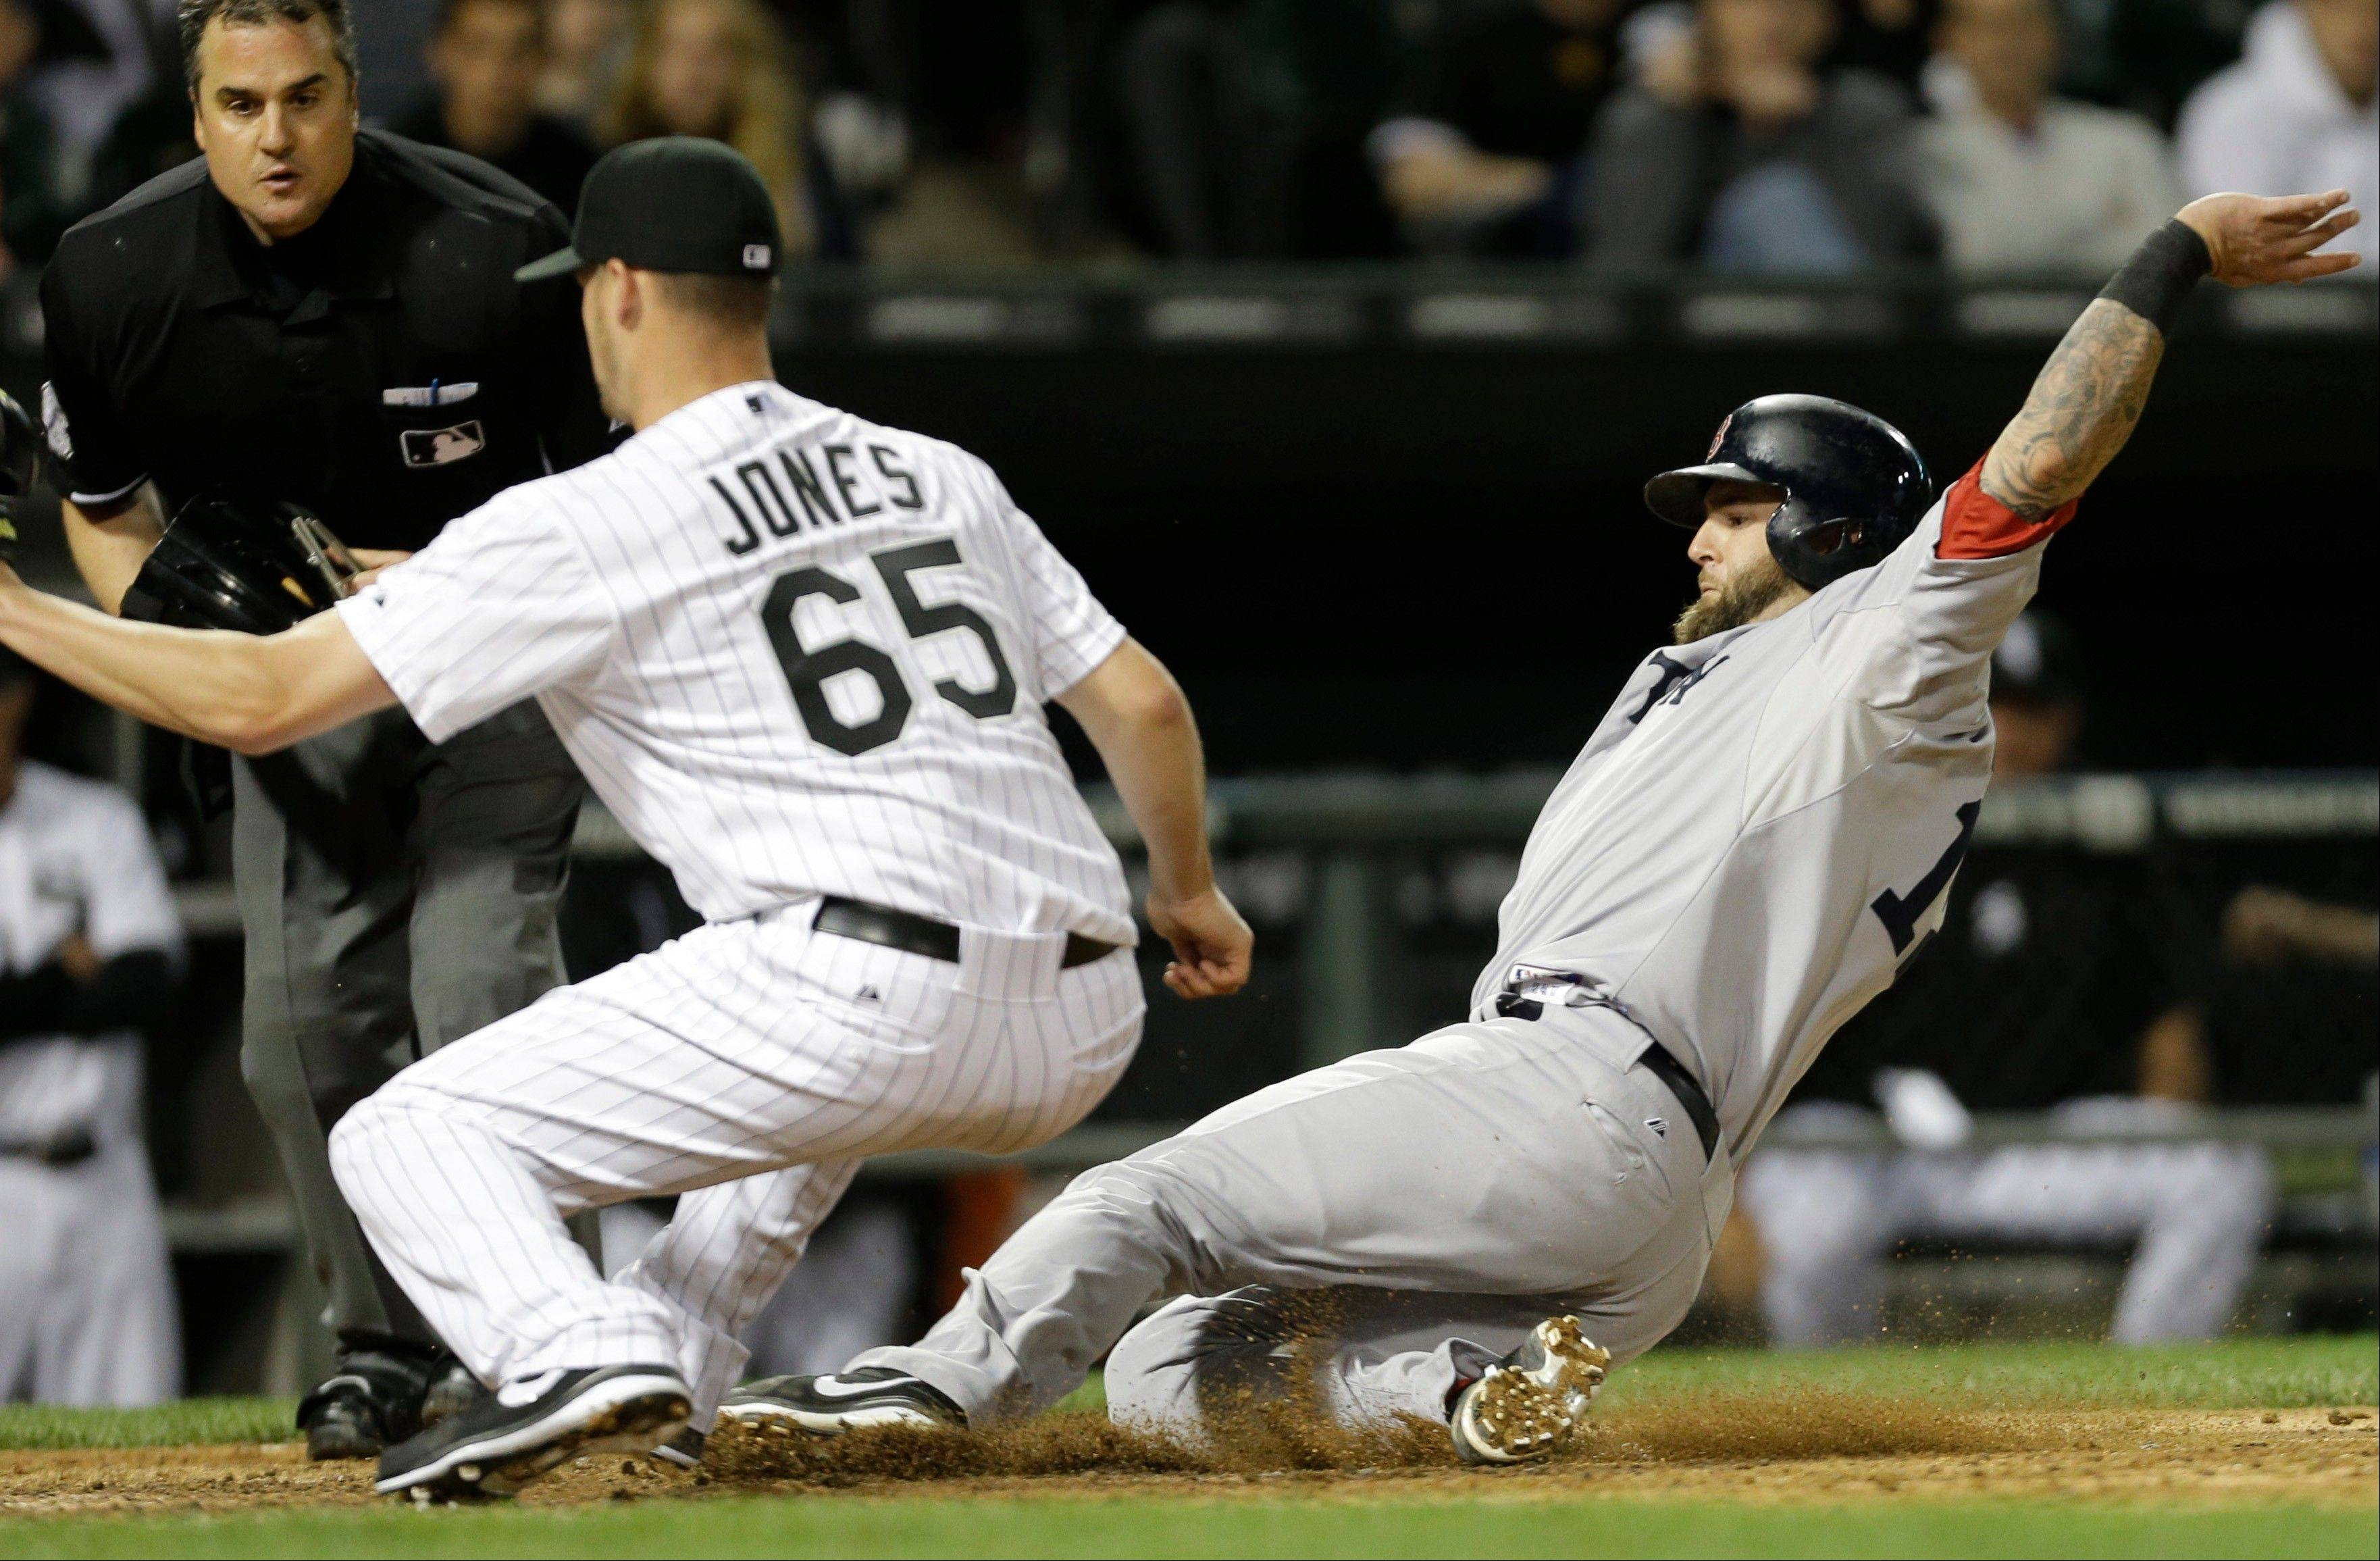 Boston Red Sox�s Mike Napoli, right, scores after a passed ball as Chicago White Sox relief pitcher Nate Jones (65) waits for the ball Wednesday night at U.S. Cellular Field. The White Sox lost 6-2.